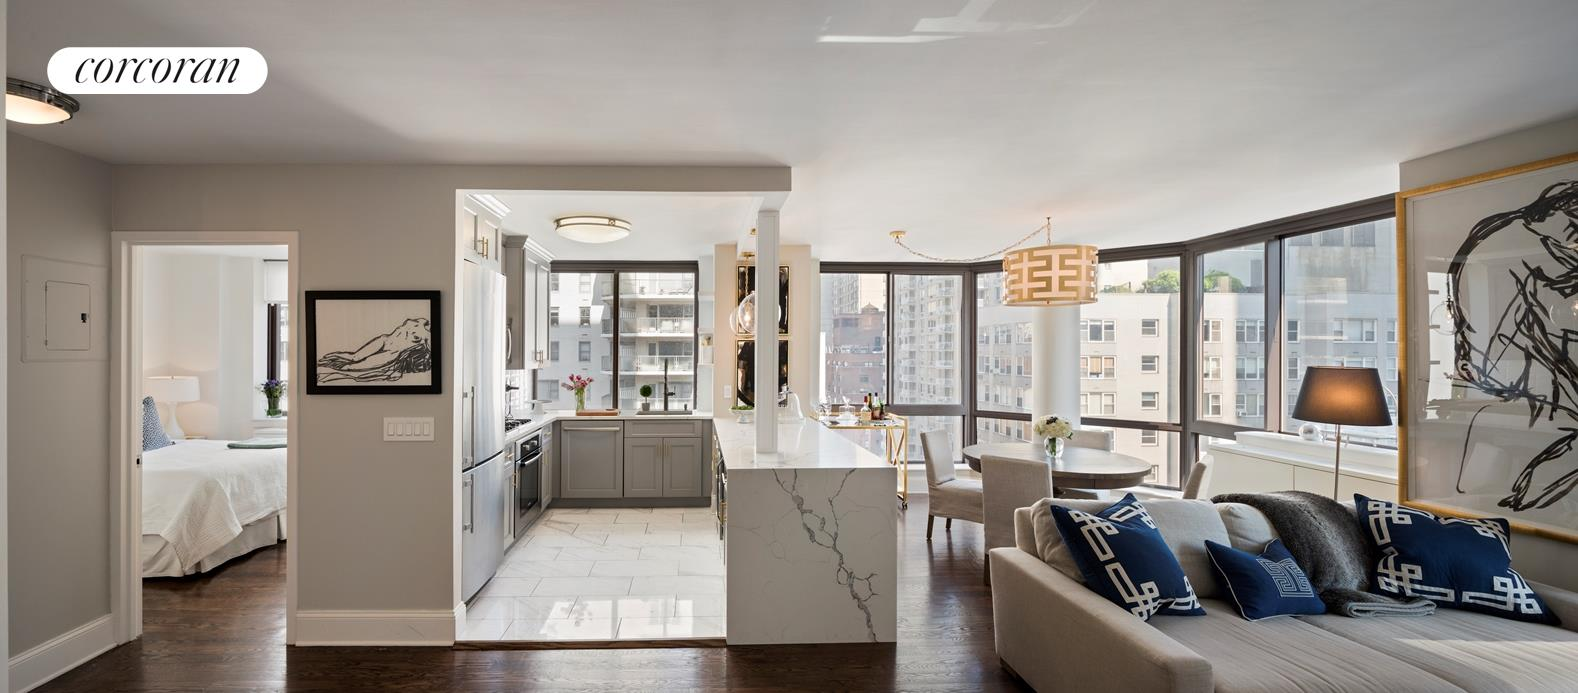 Corcoran 300 east 64th street apt 15 a upper east side for Wheelchair accessible homes for sale near me